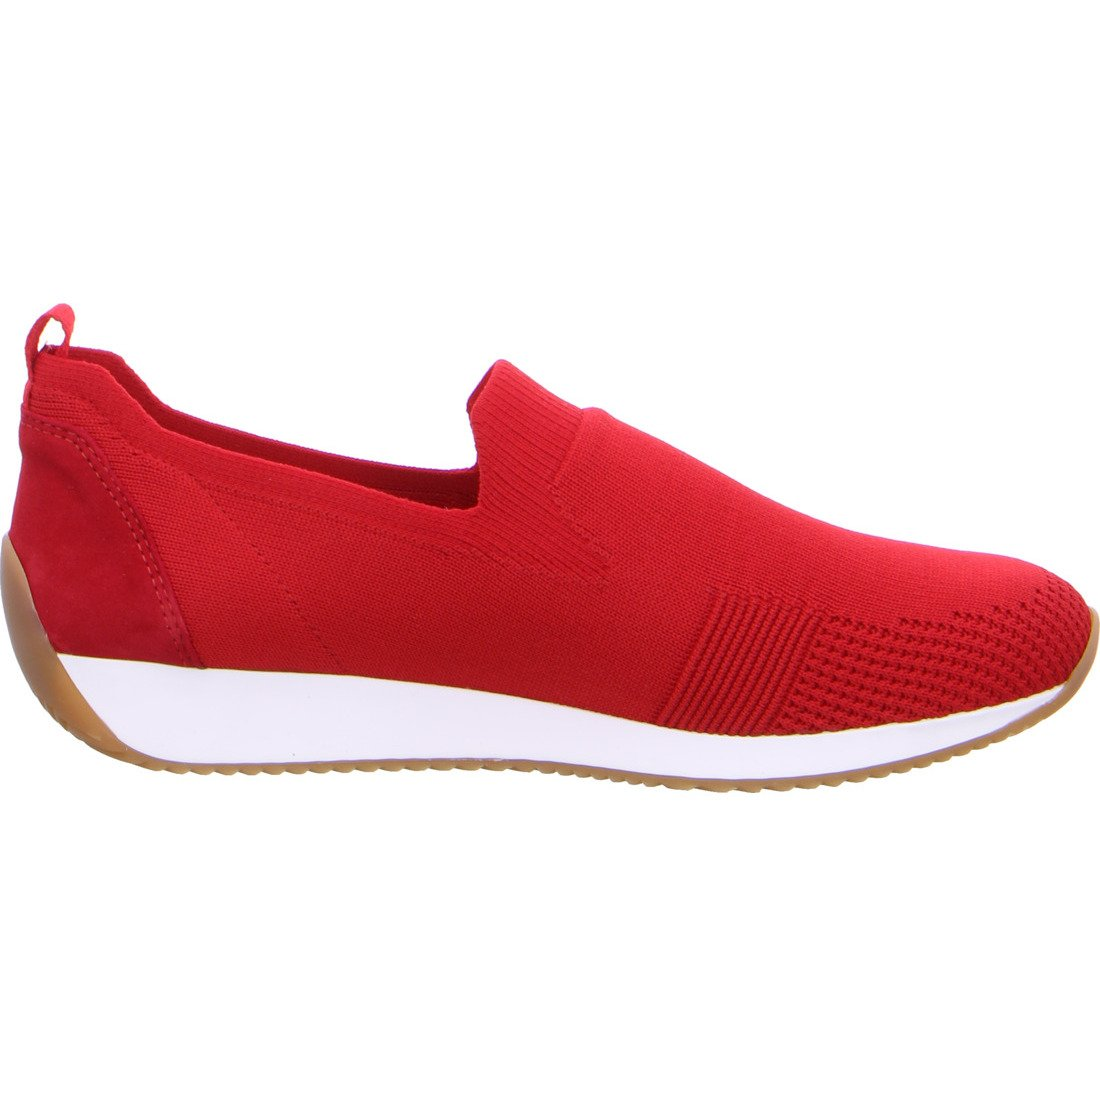 Ara Womens Red Lissabon Fusion4 Flats 12-34080-12 | Vilbury London